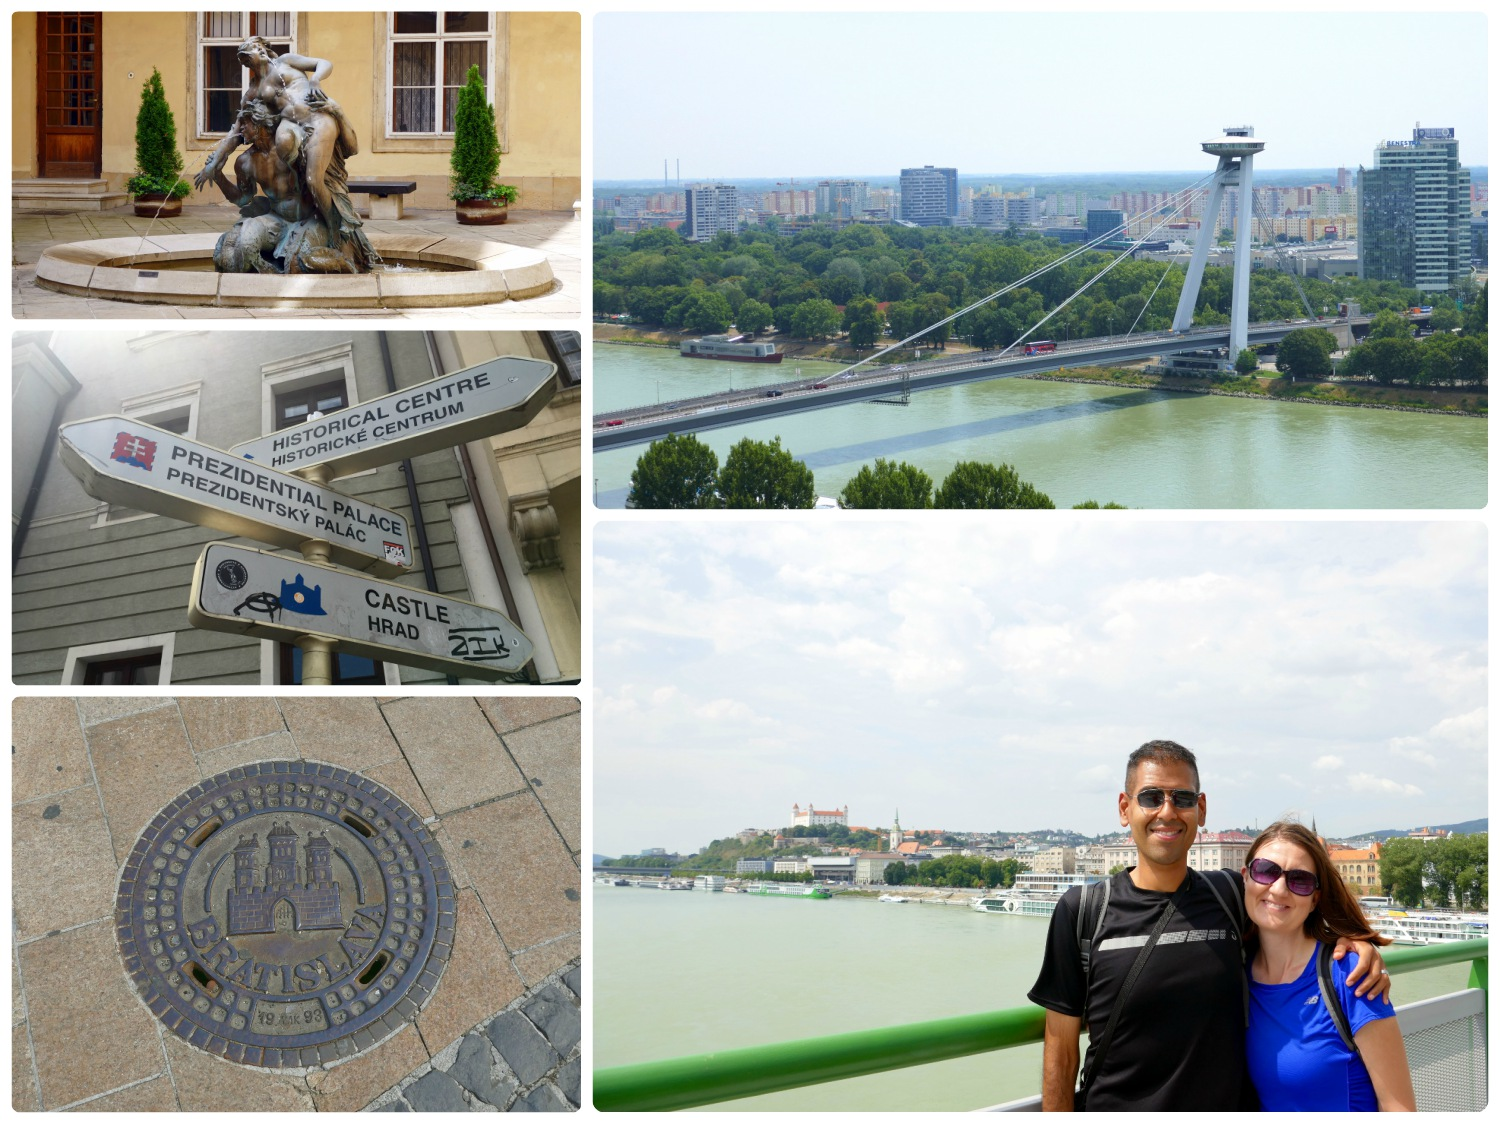 Beyond the sights we planned to see in Bratislava, we found so much more as we explored! Clockwise (from the top): A fountain in the courtyard of Mirbachov Palác, the bridge known as the UFO Bridge, us on Old Bridge over the Danube River, don't forget to look down as the man hole covers say 'Bratislava' on them, signs pointing in the directions of the nearby tourist attractions.